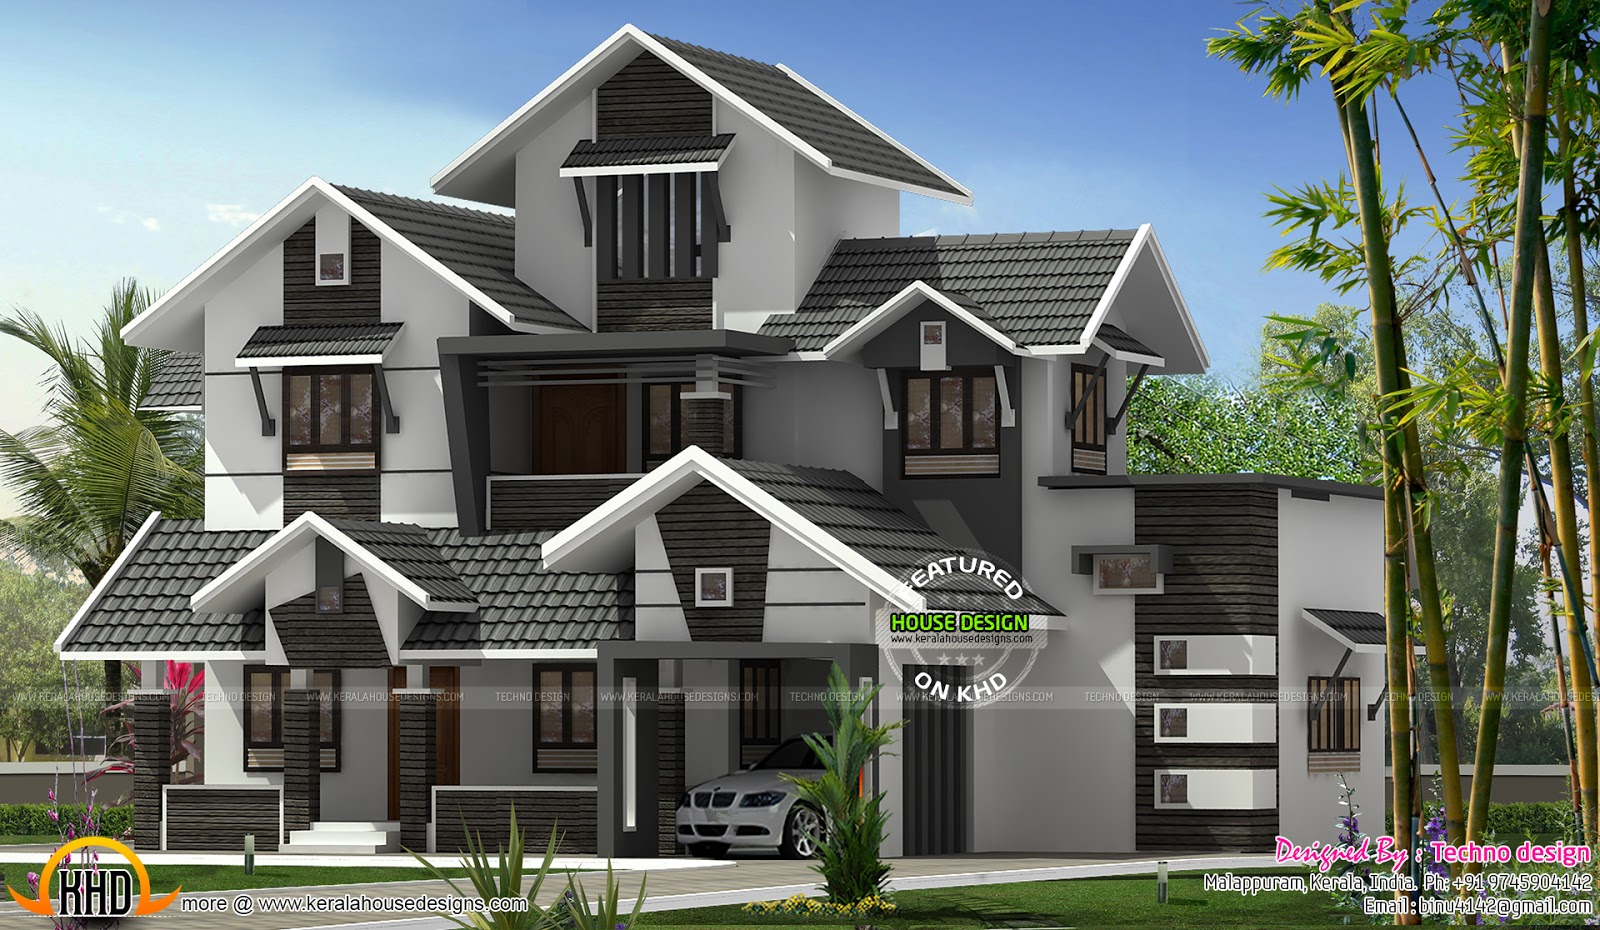 Modern kerala home design kerala home design and floor plans for Home designs kerala photos